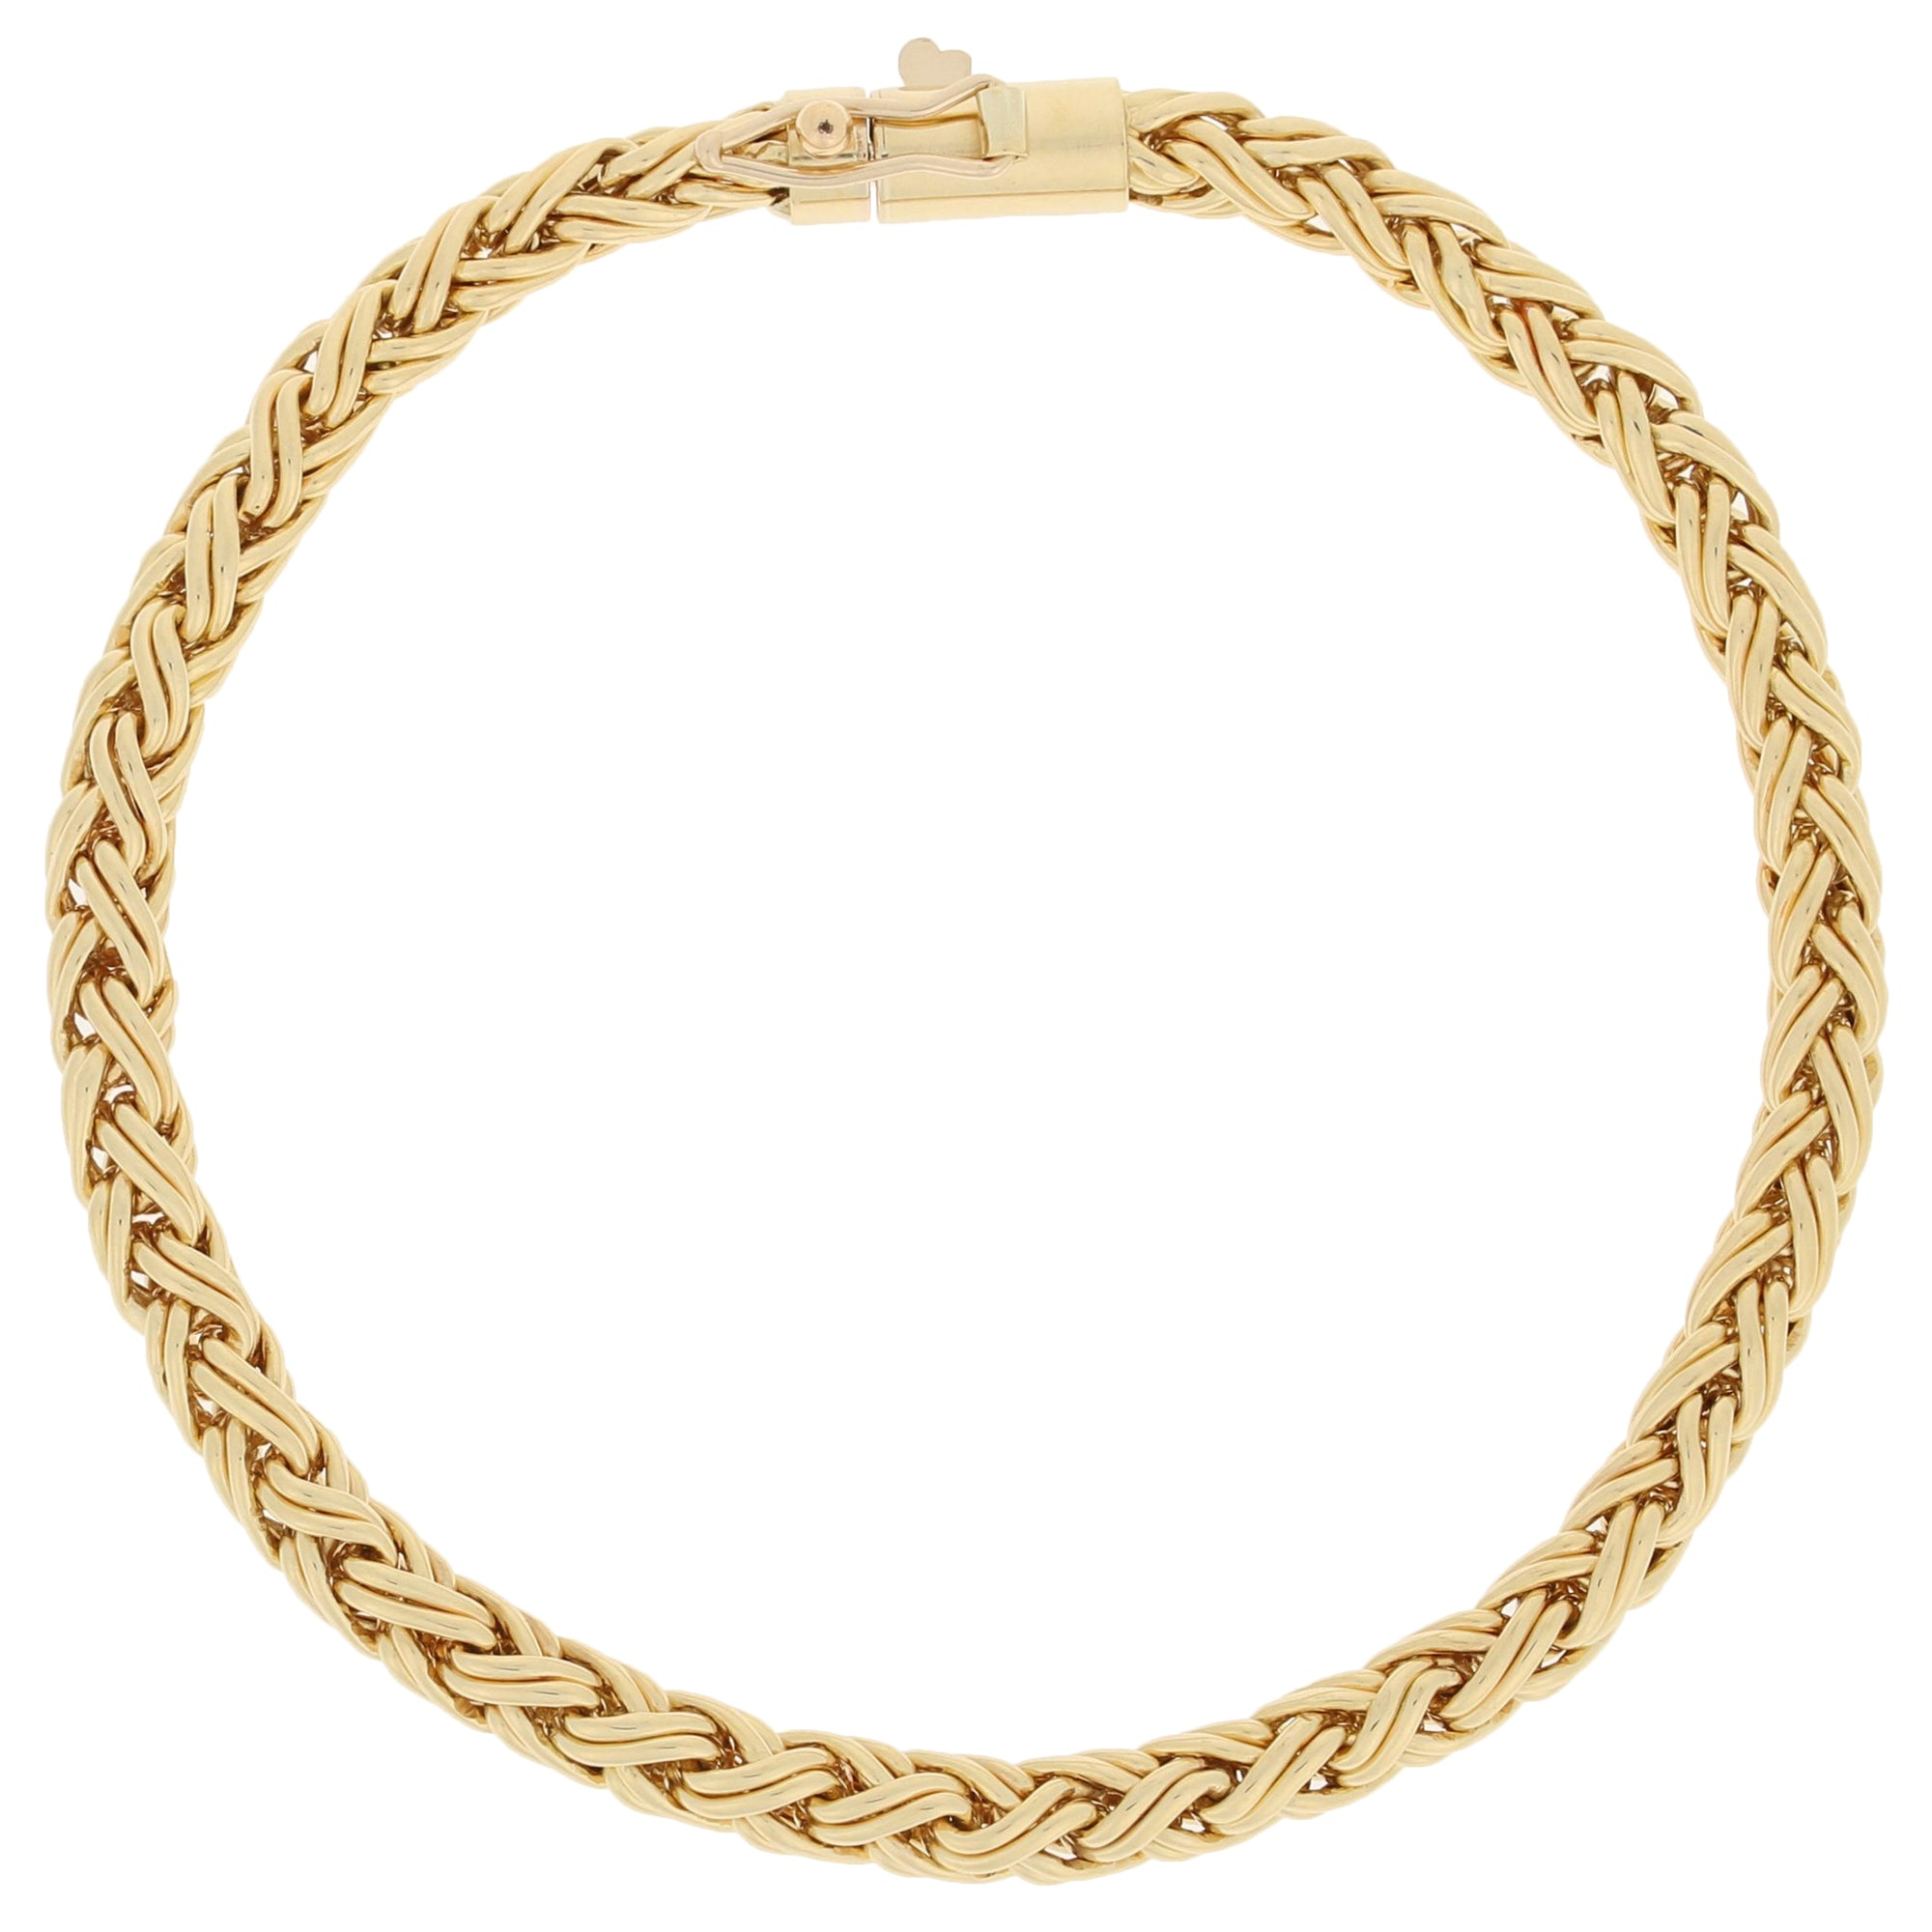 Tiffany & Co. Wheat Chain Bracelet